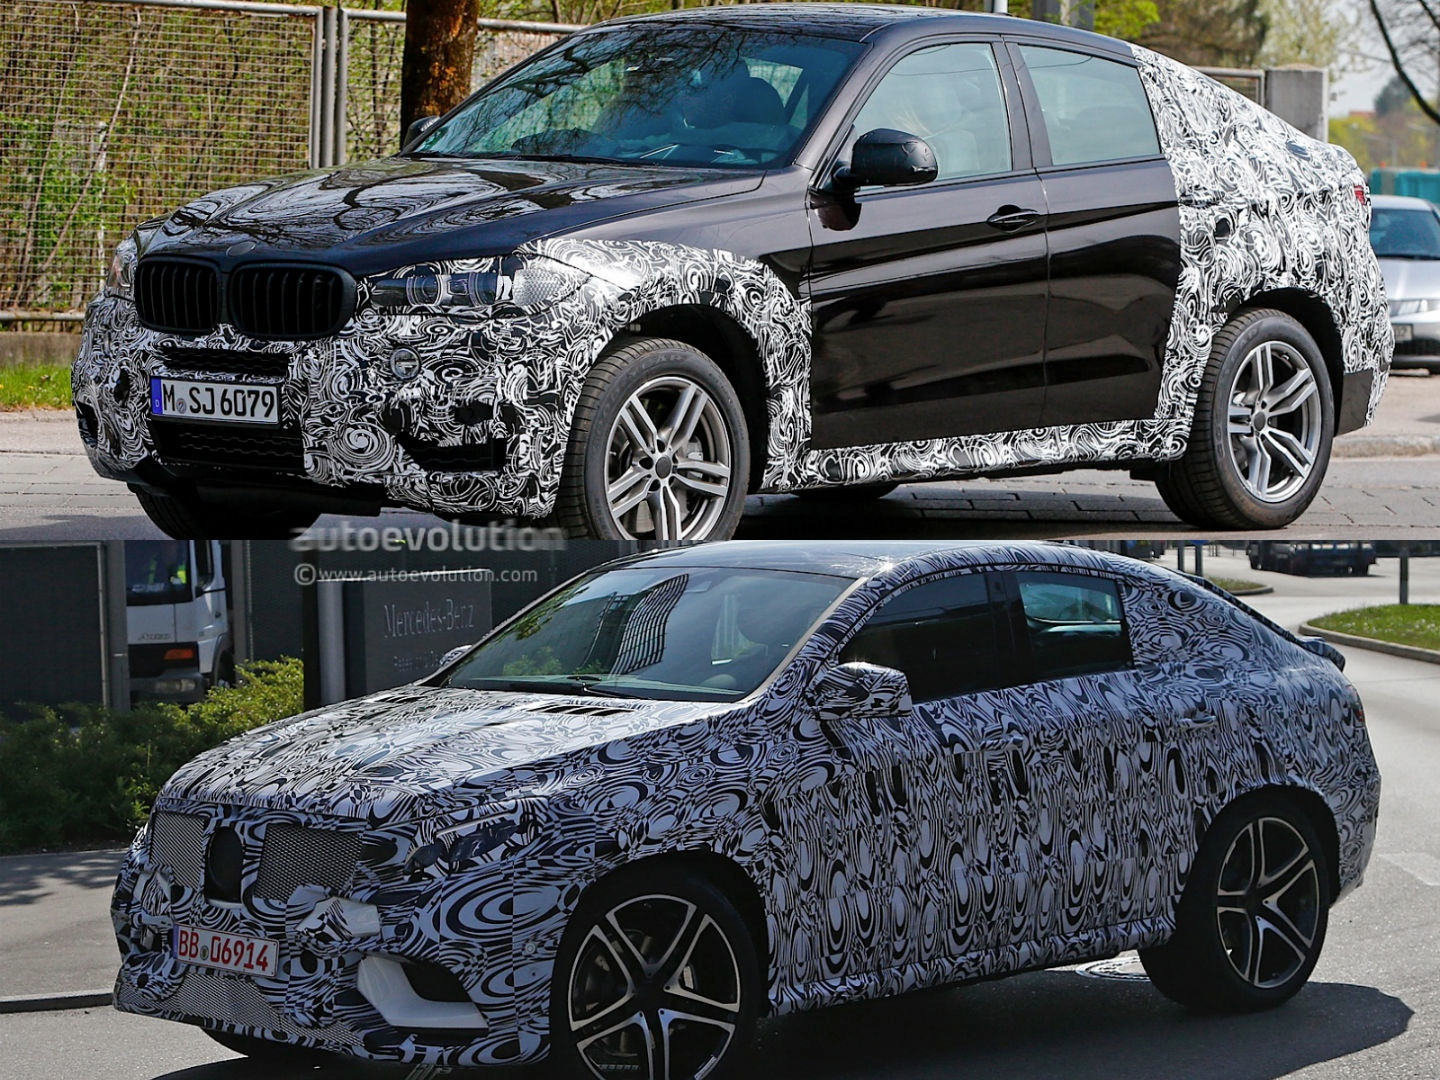 2015 mercedes benz mlc vs 2015 bmw x6 spyshots autoevolution. Black Bedroom Furniture Sets. Home Design Ideas